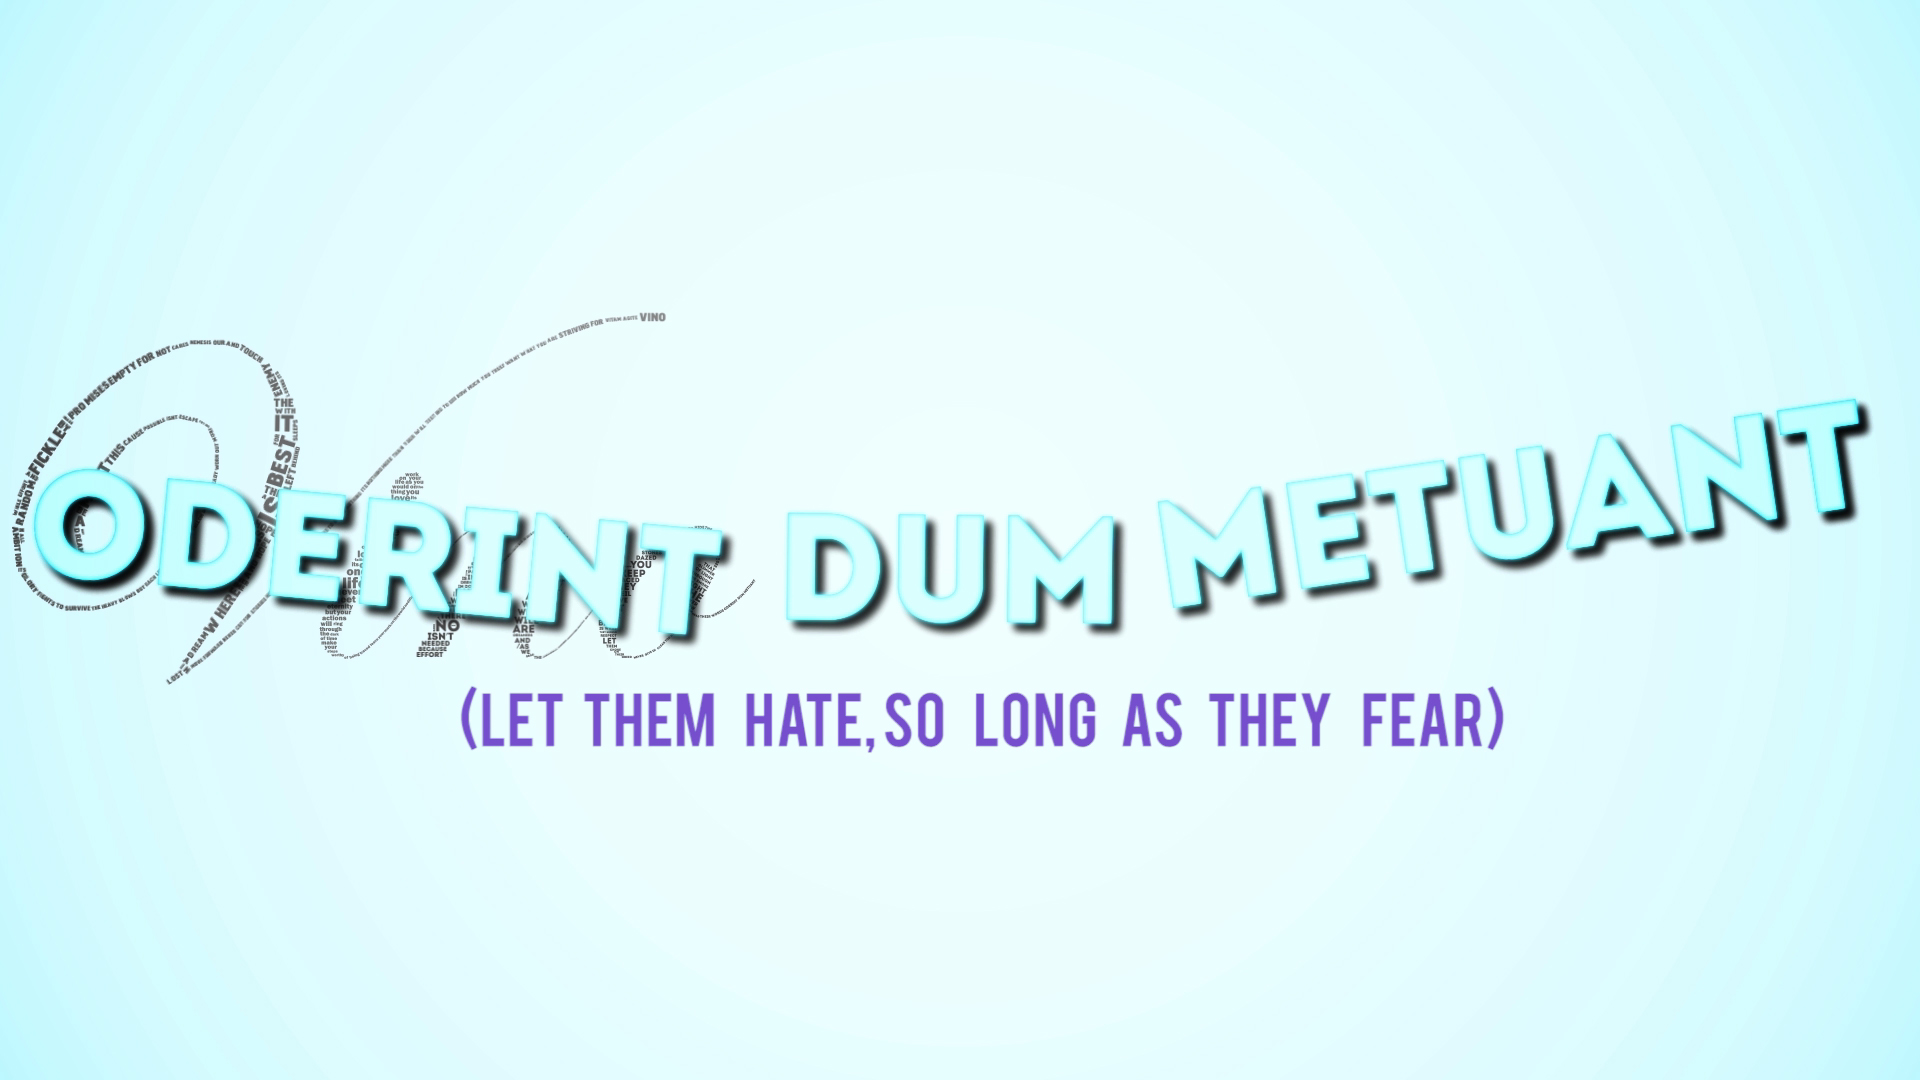 Oderint Dum Metuant (let them hate, so long as they fear)